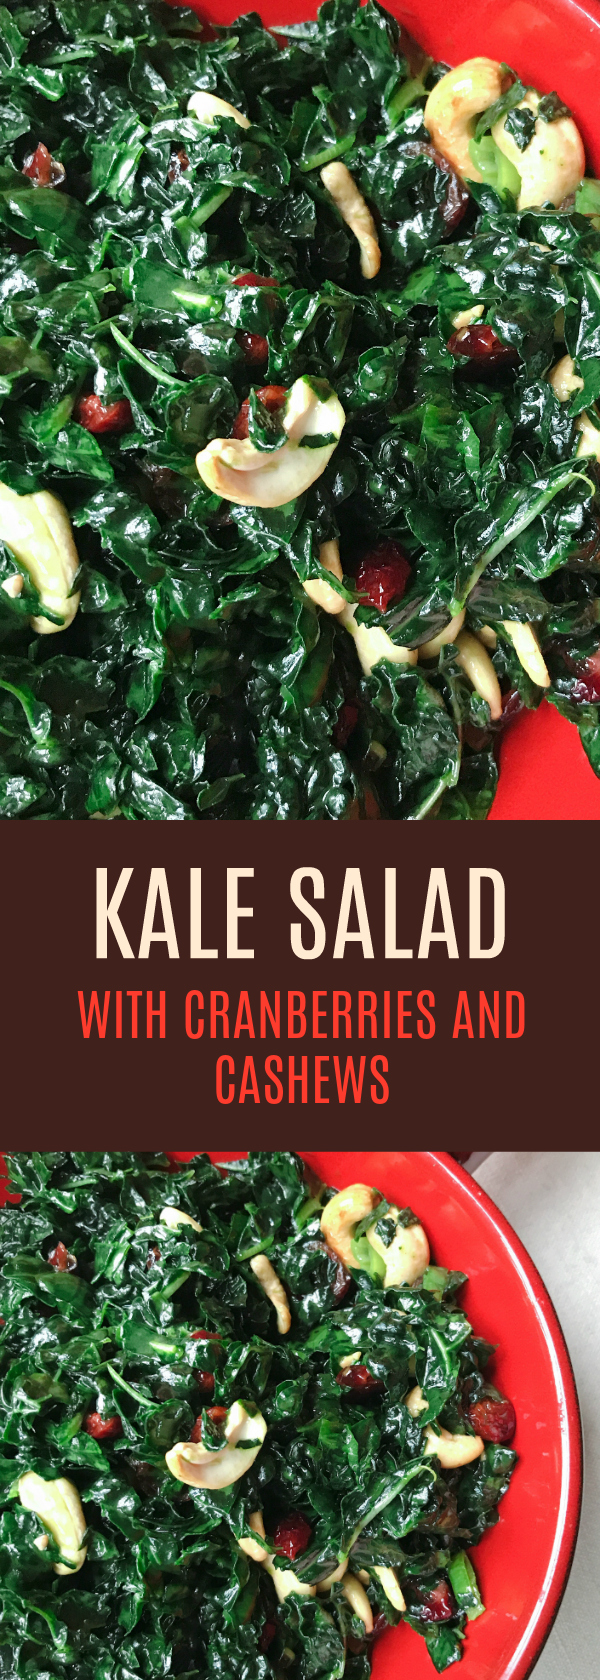 Delicious Kale Salad with Cranberries, Cashews and a Maple Mustard Dressing. Gluten and Dairy Free